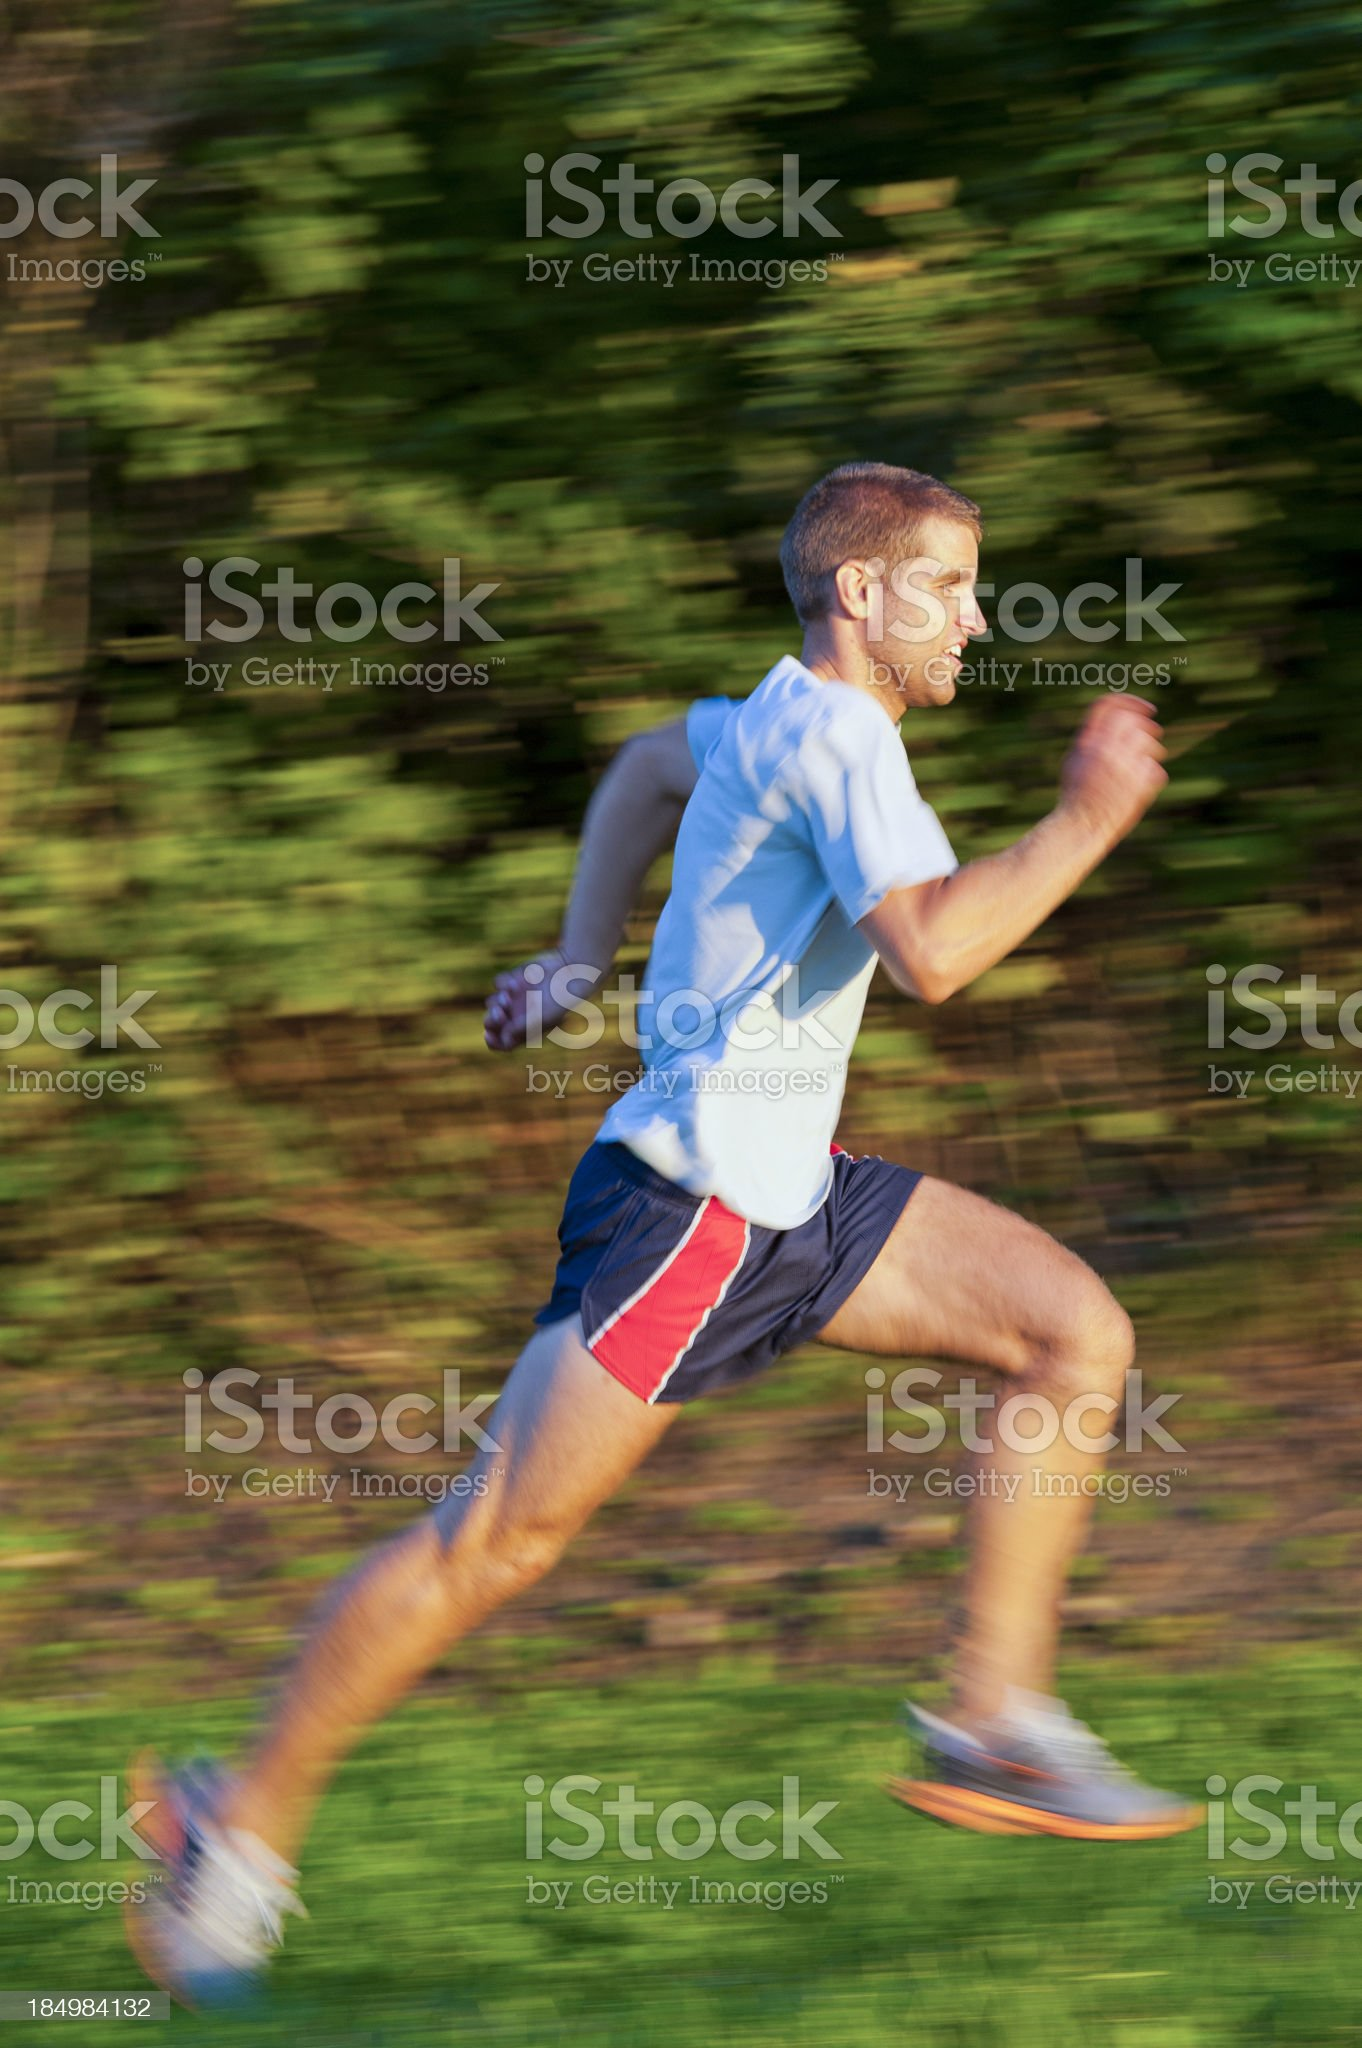 Running in the park royalty-free stock photo